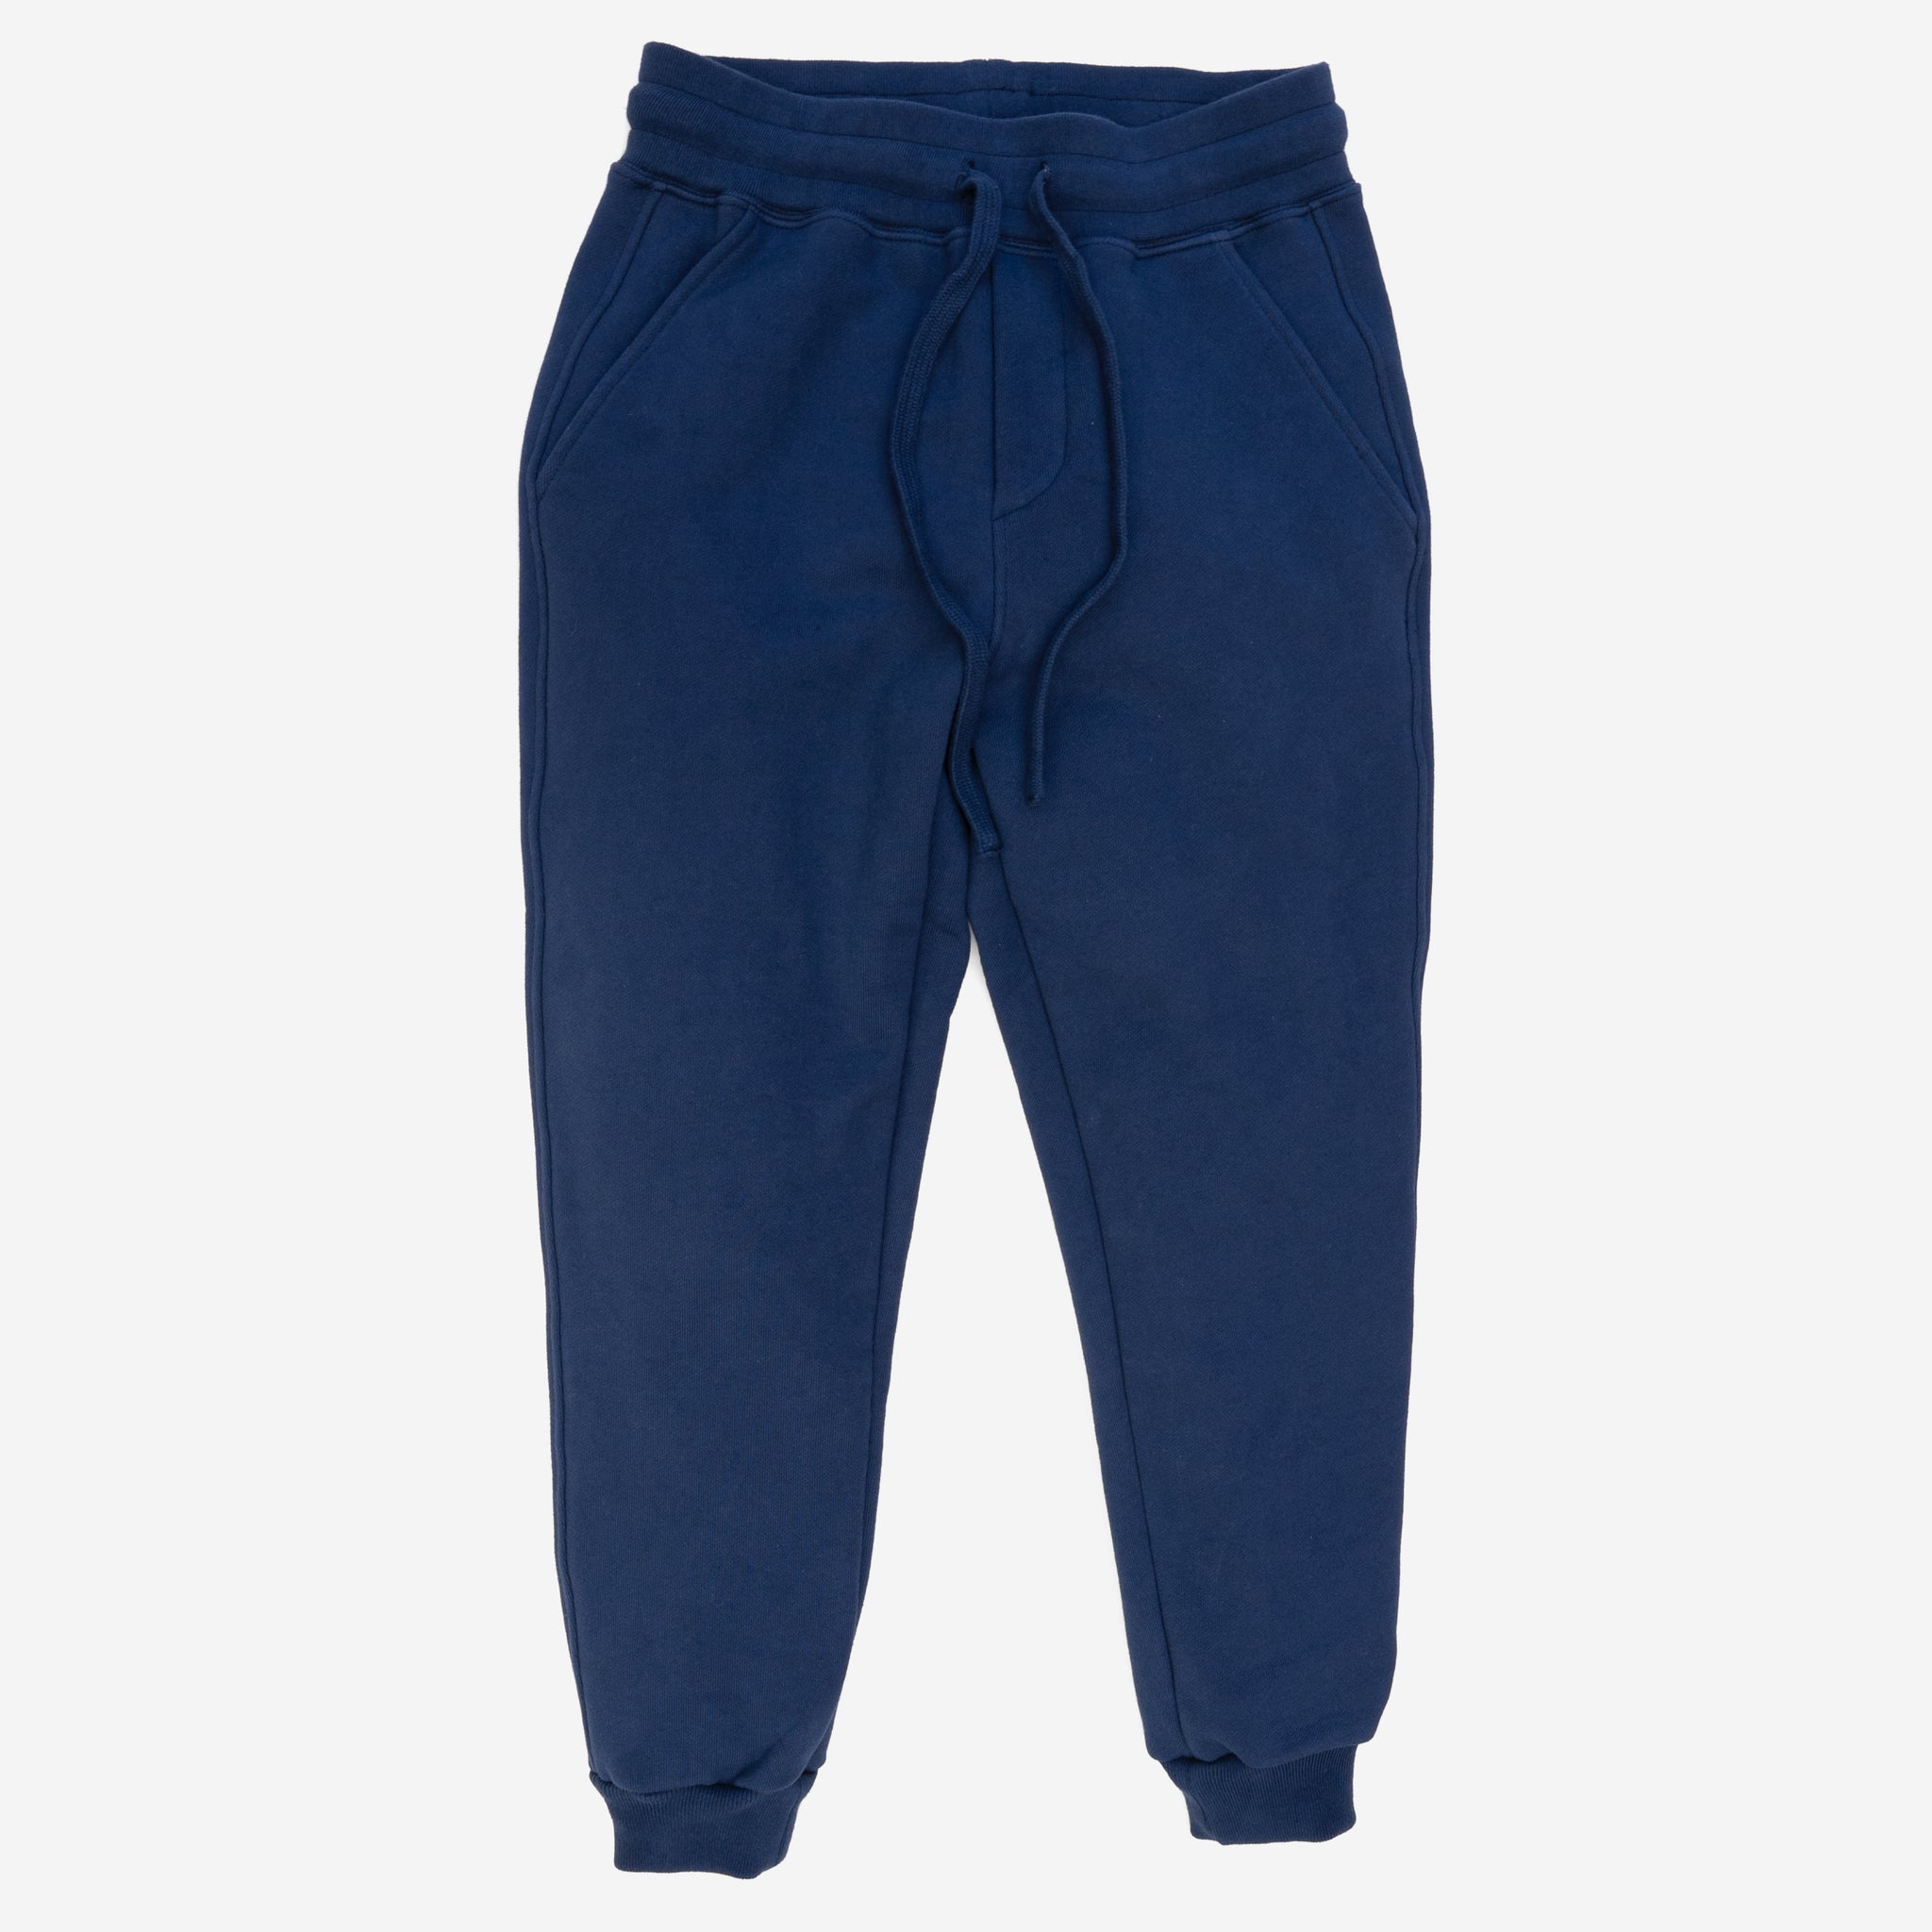 Navy Snuggle Pants